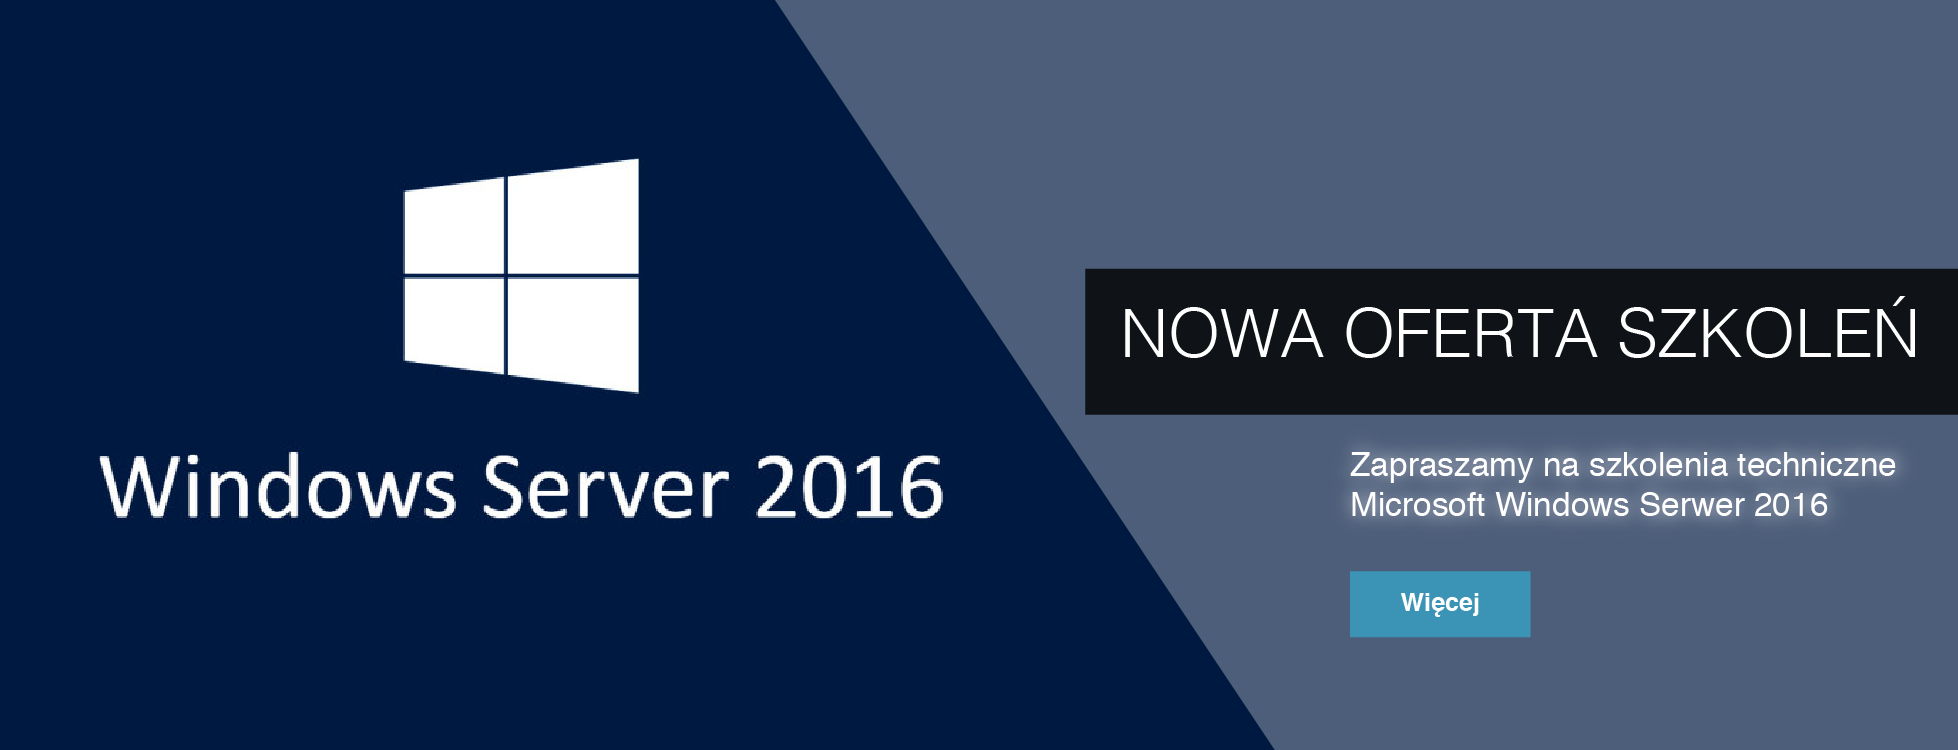 Szkolenia Microsoft Windows Server 2016